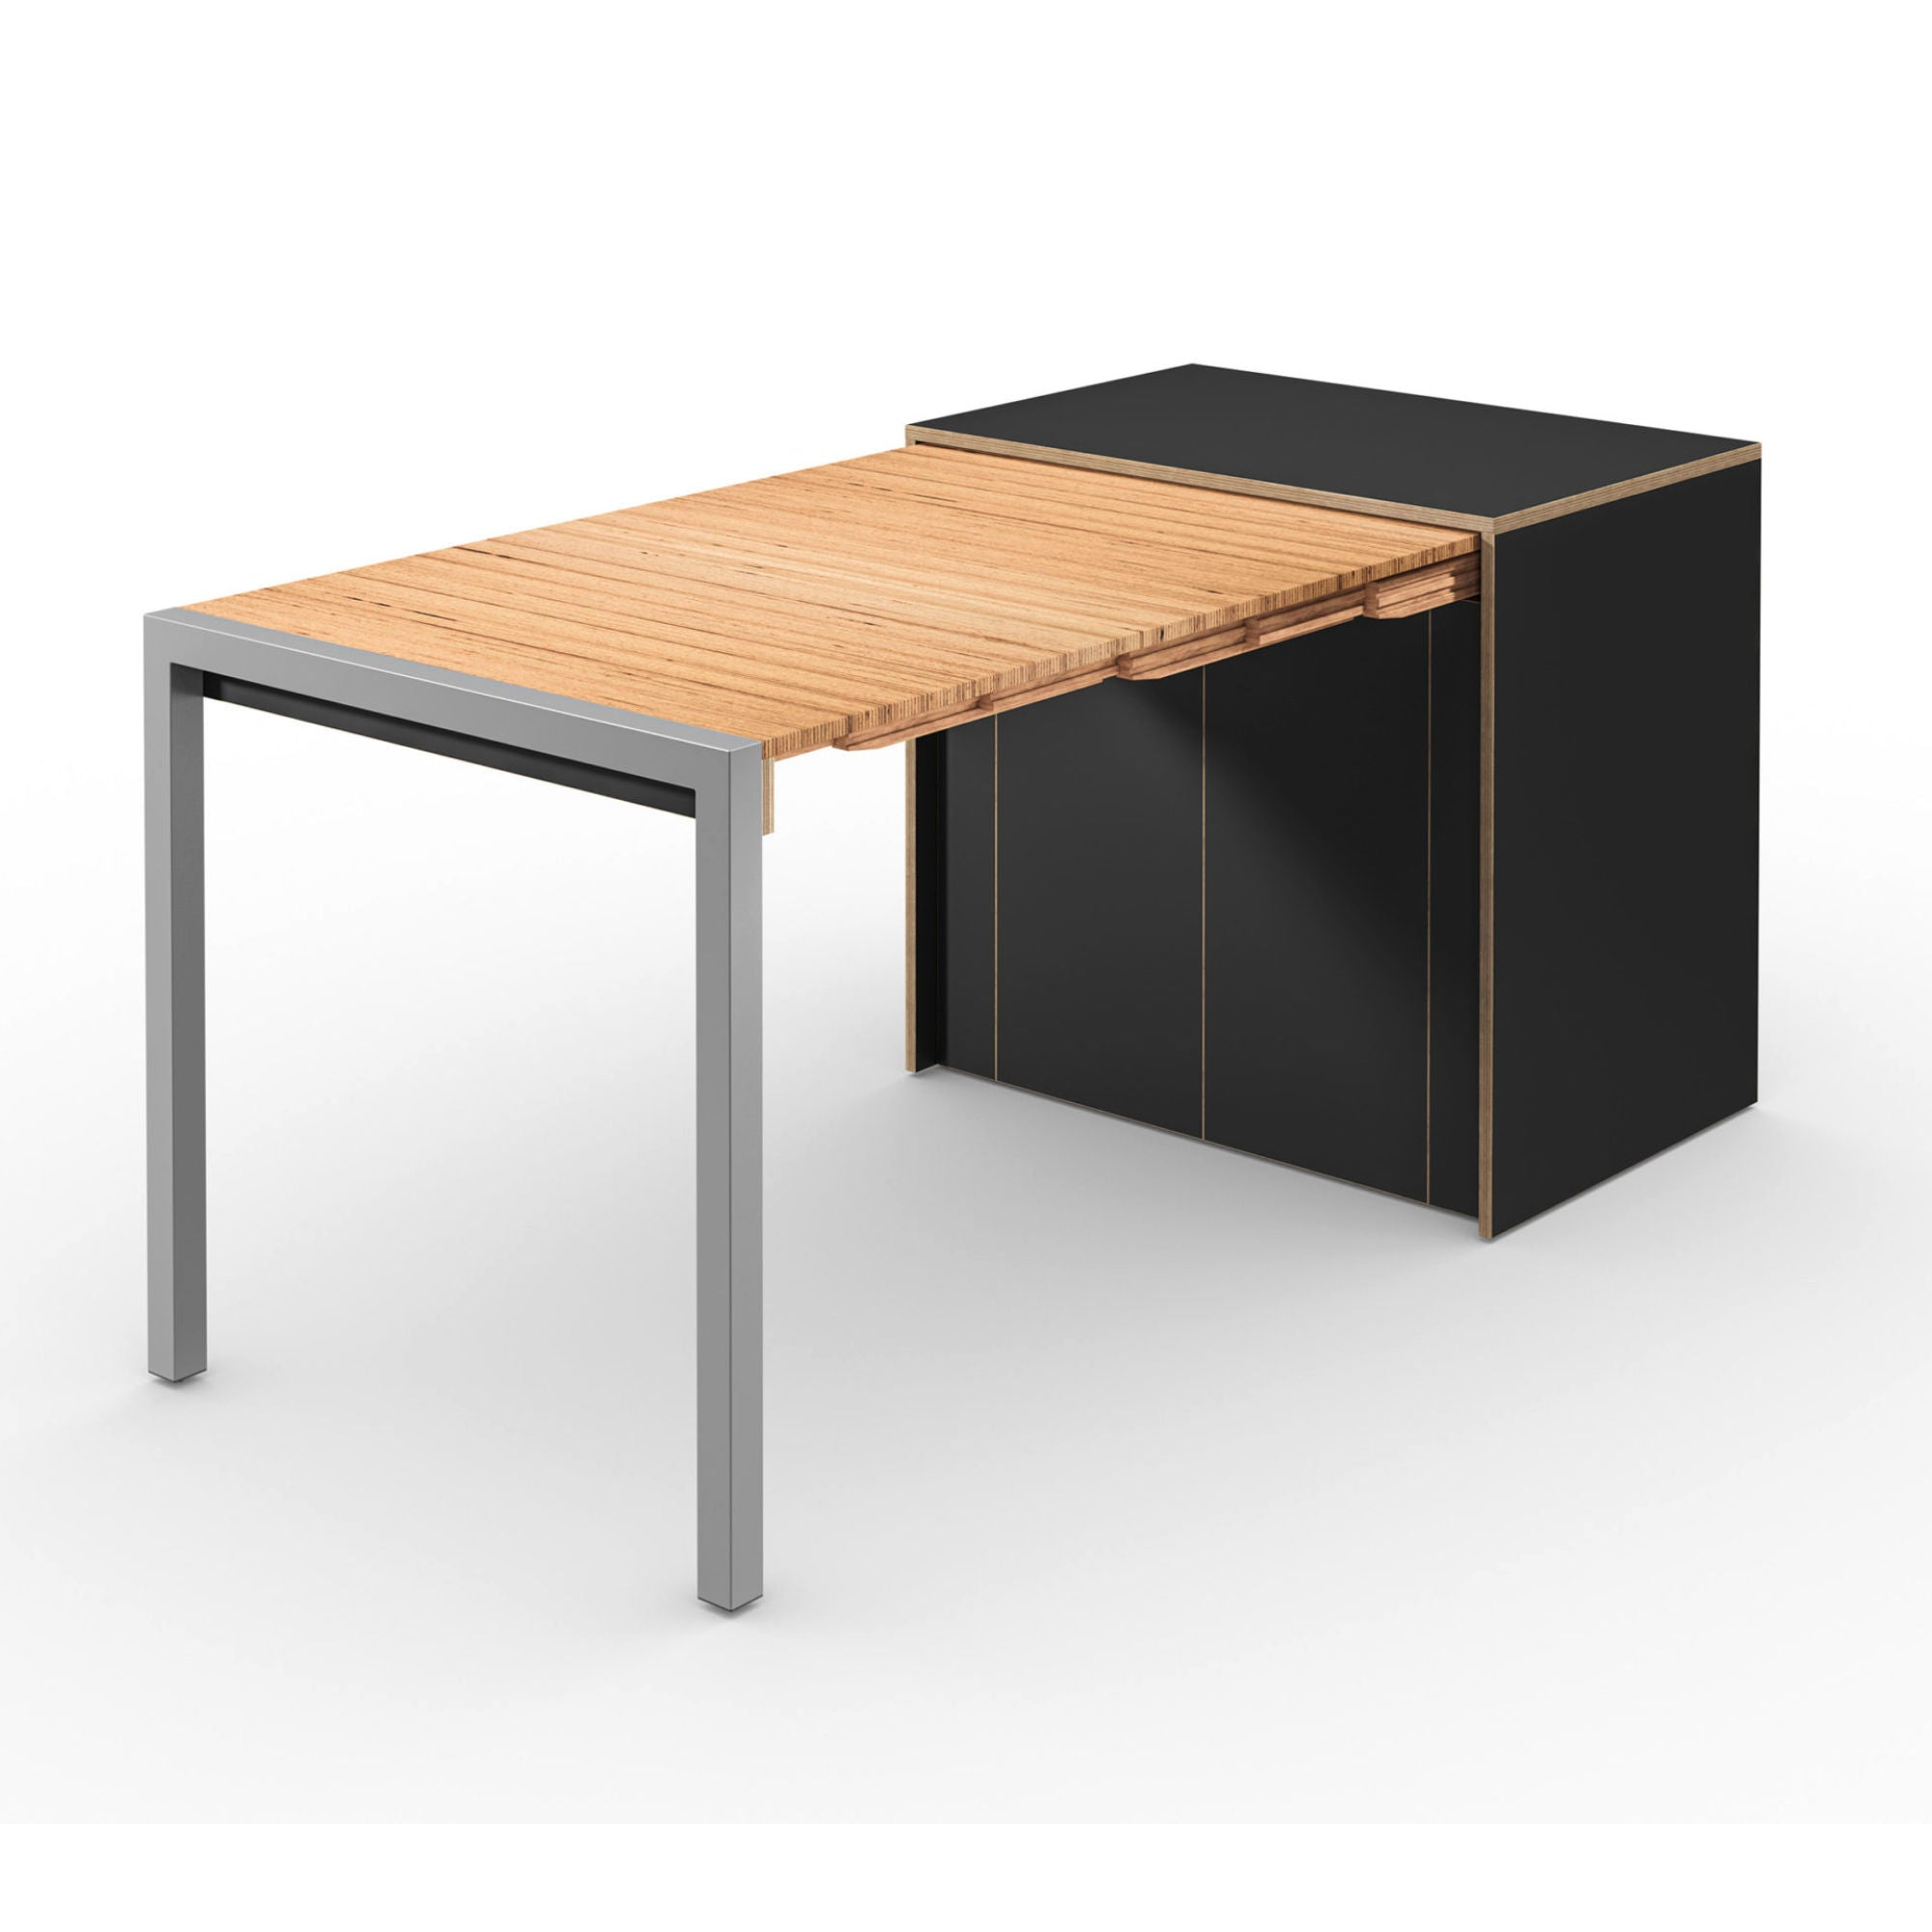 Alwin's Room&Board Extendable Table Sideboard , Super Matte Black/Beech Laminated Veneer